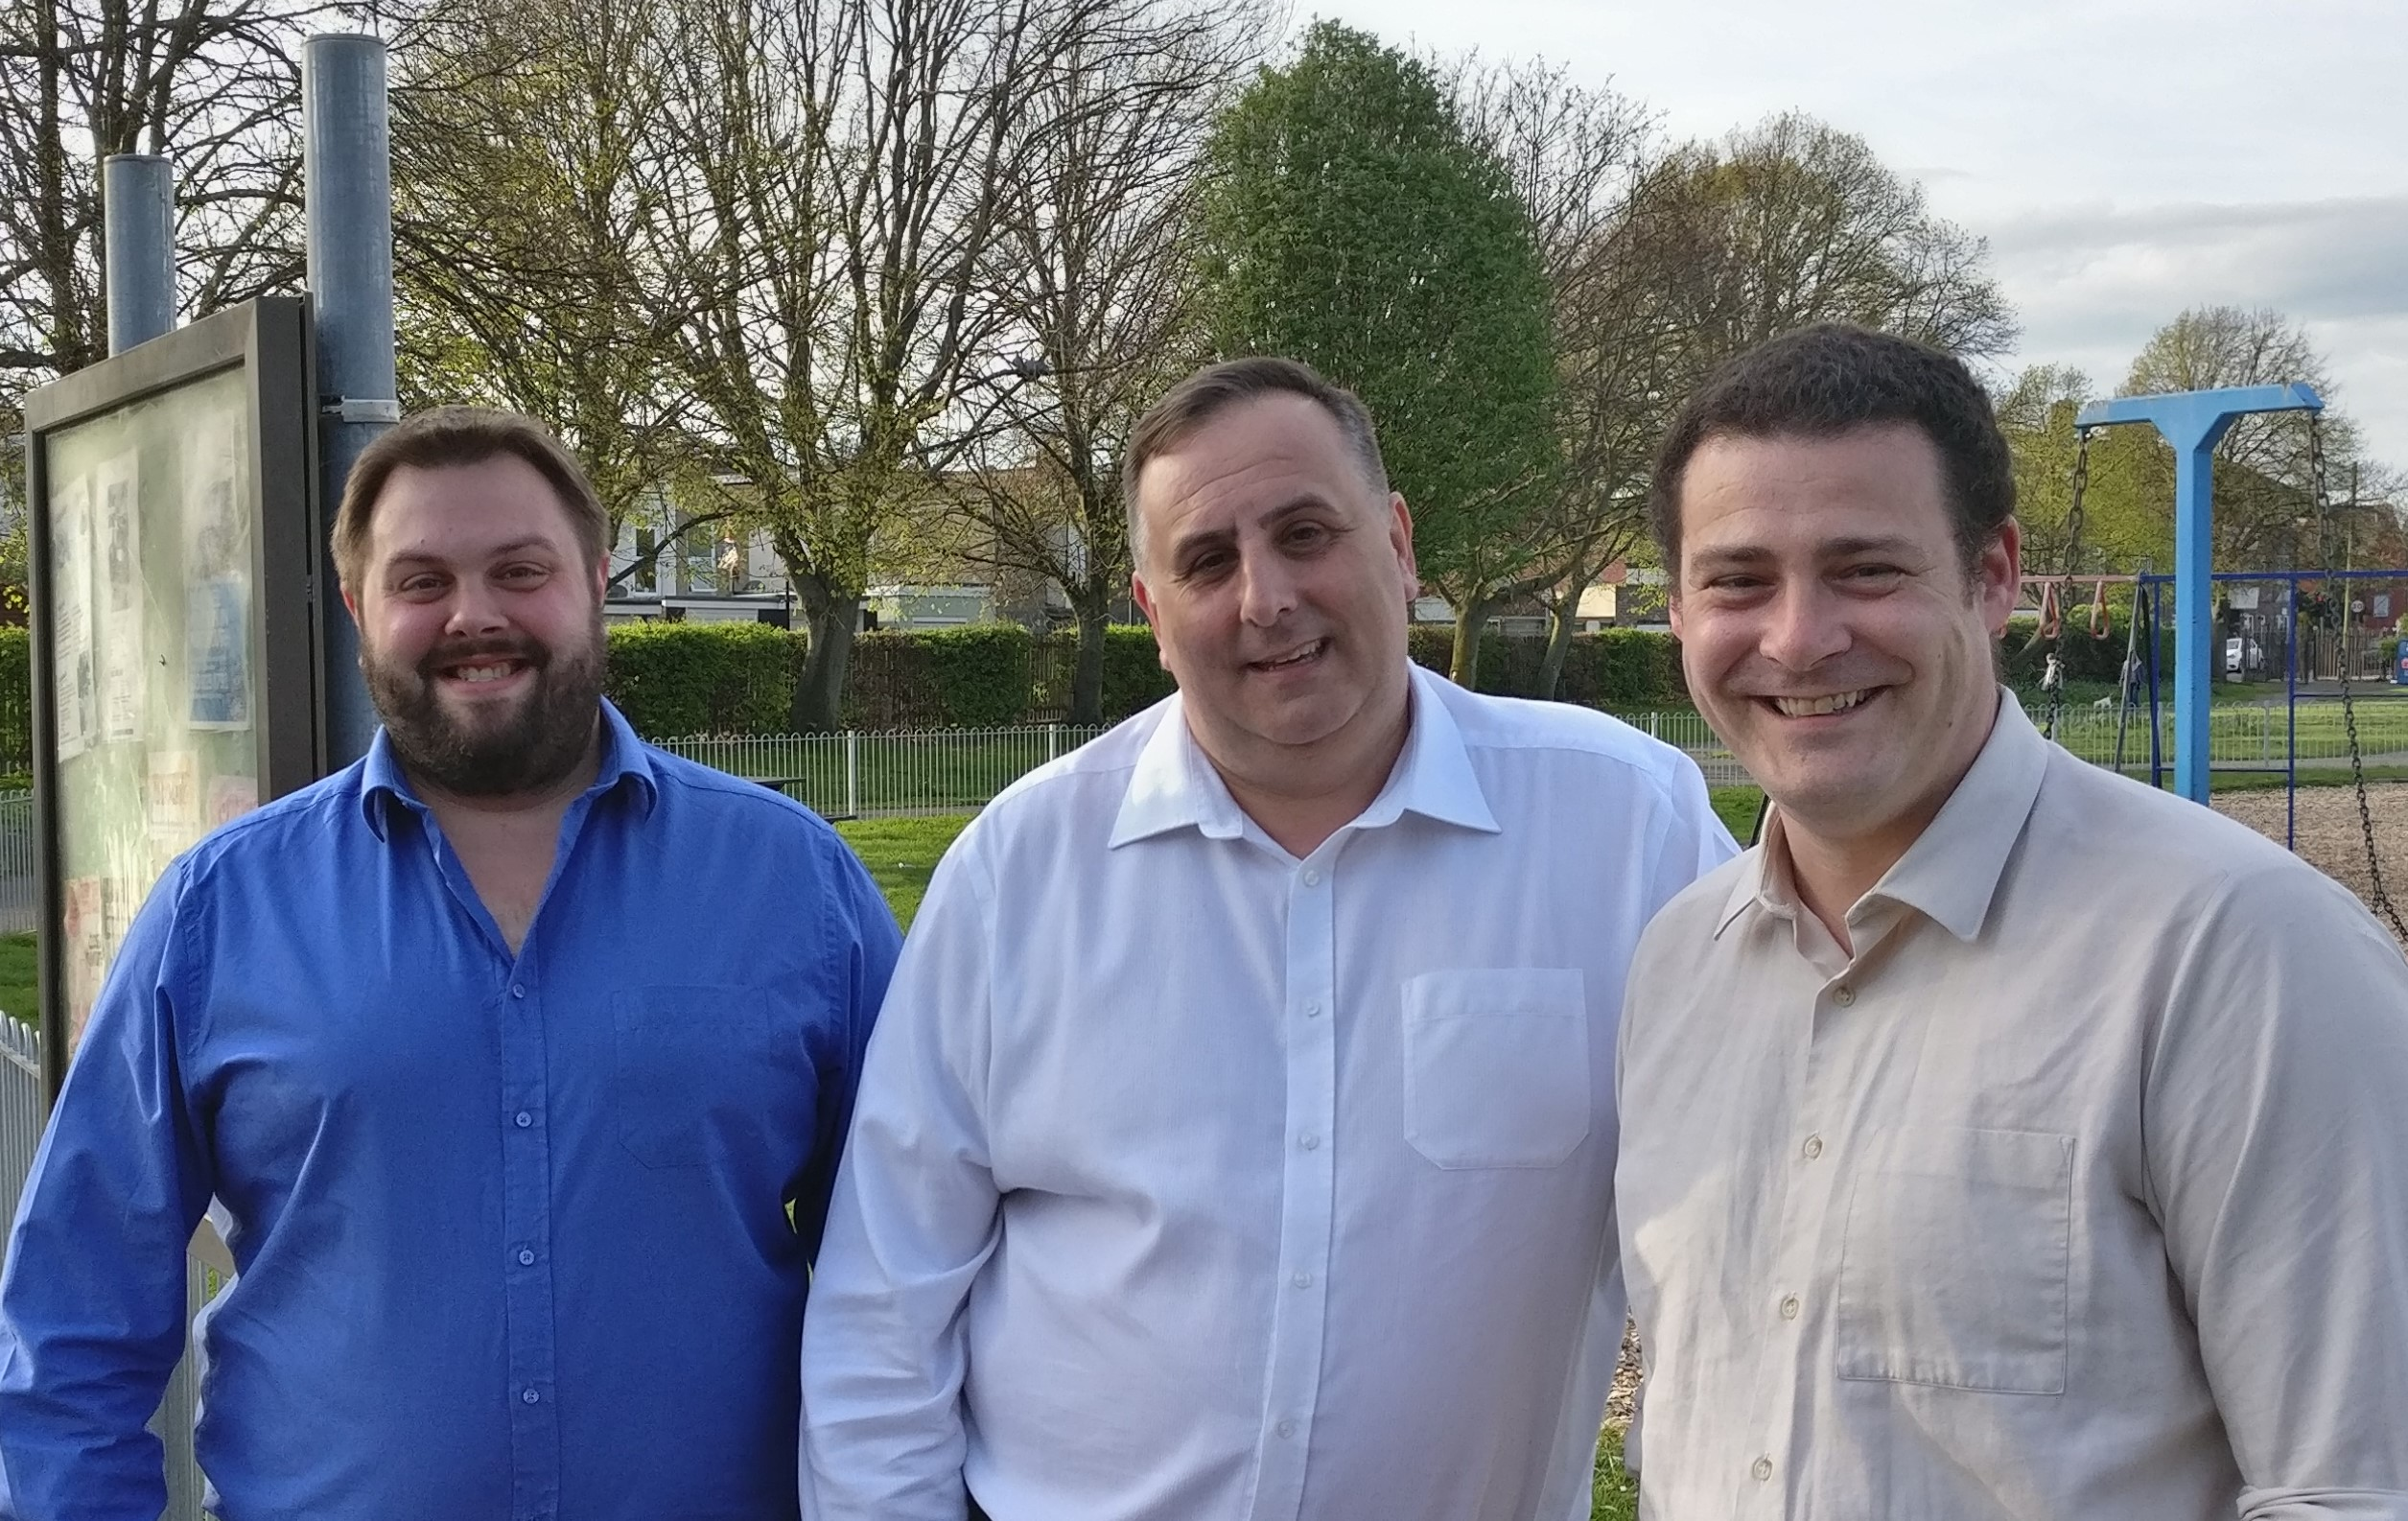 Stuart Brown with Fratton Lib Dem councillors David Fuller and Dave Ashmore